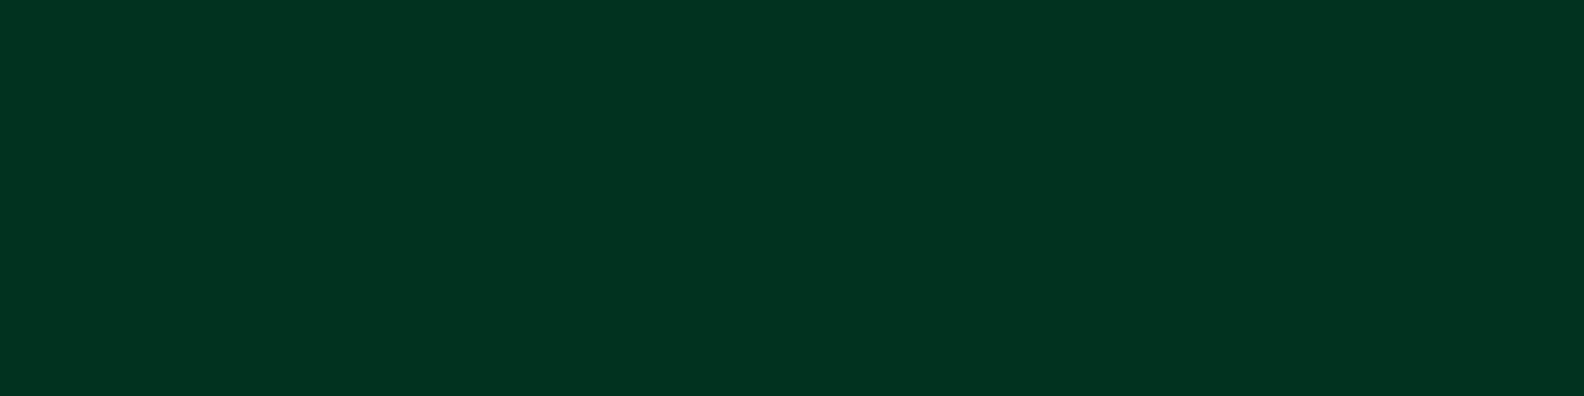 1584x396 Dark Green Solid Color Background